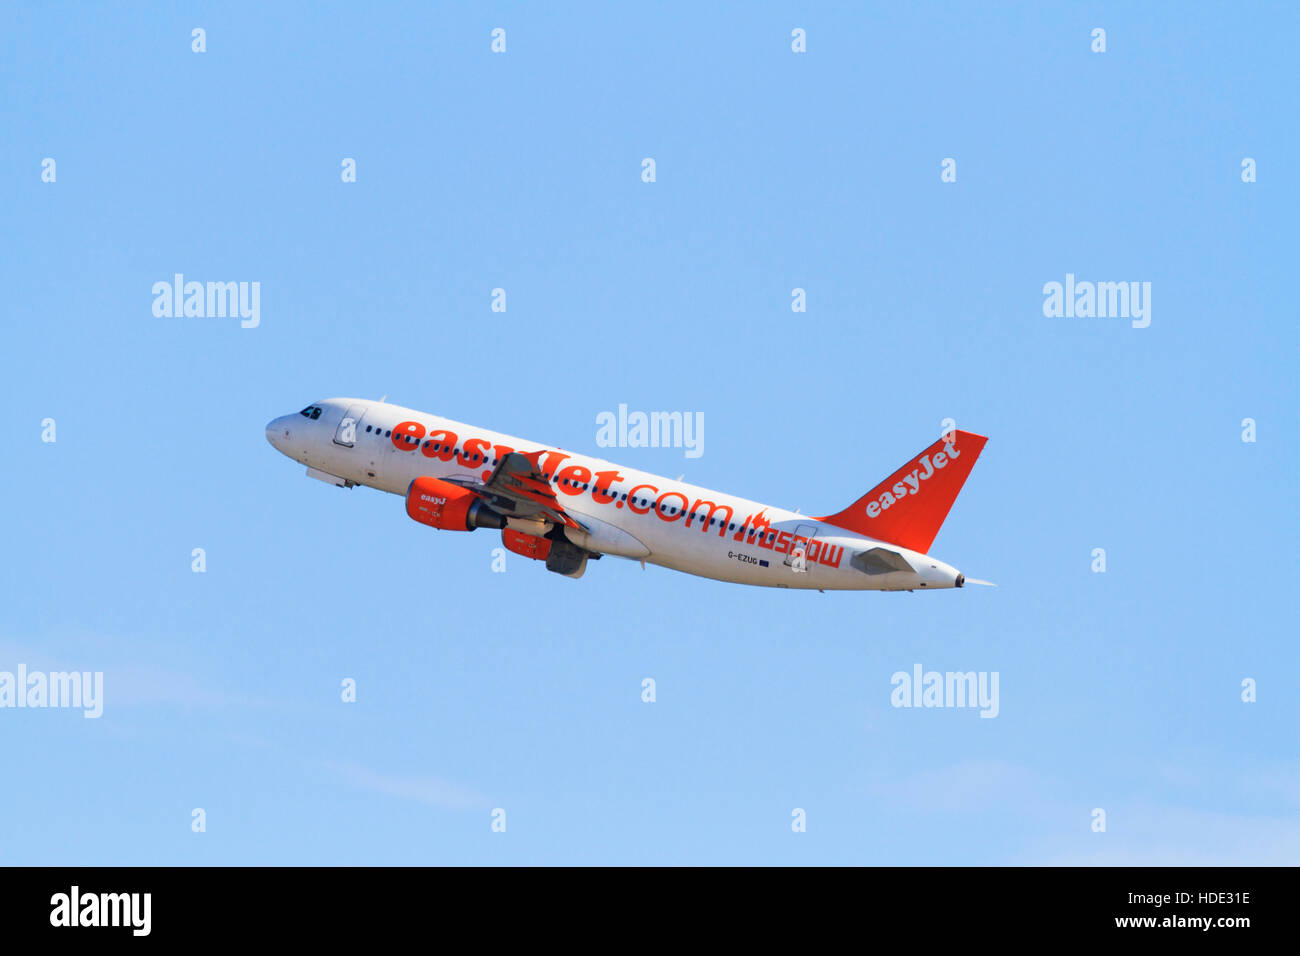 Airbus A320-214 of Easyjet in Moscow livery. Stock Photo